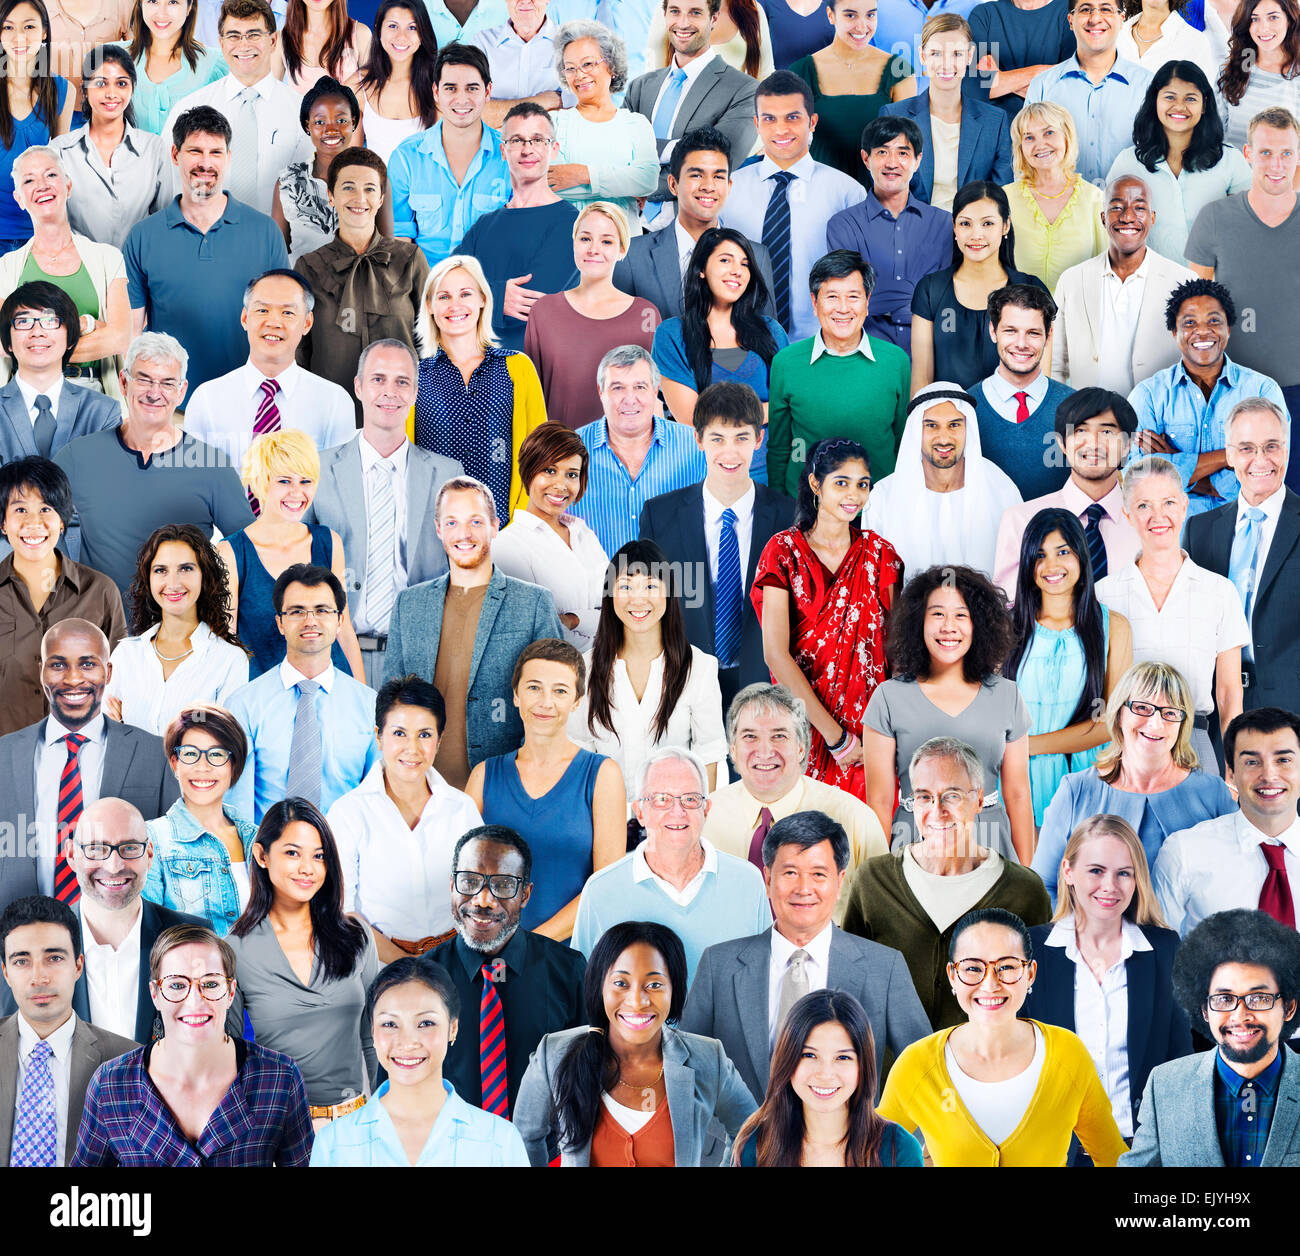 Large Group of Diverse Multiethnic People Stock Photo